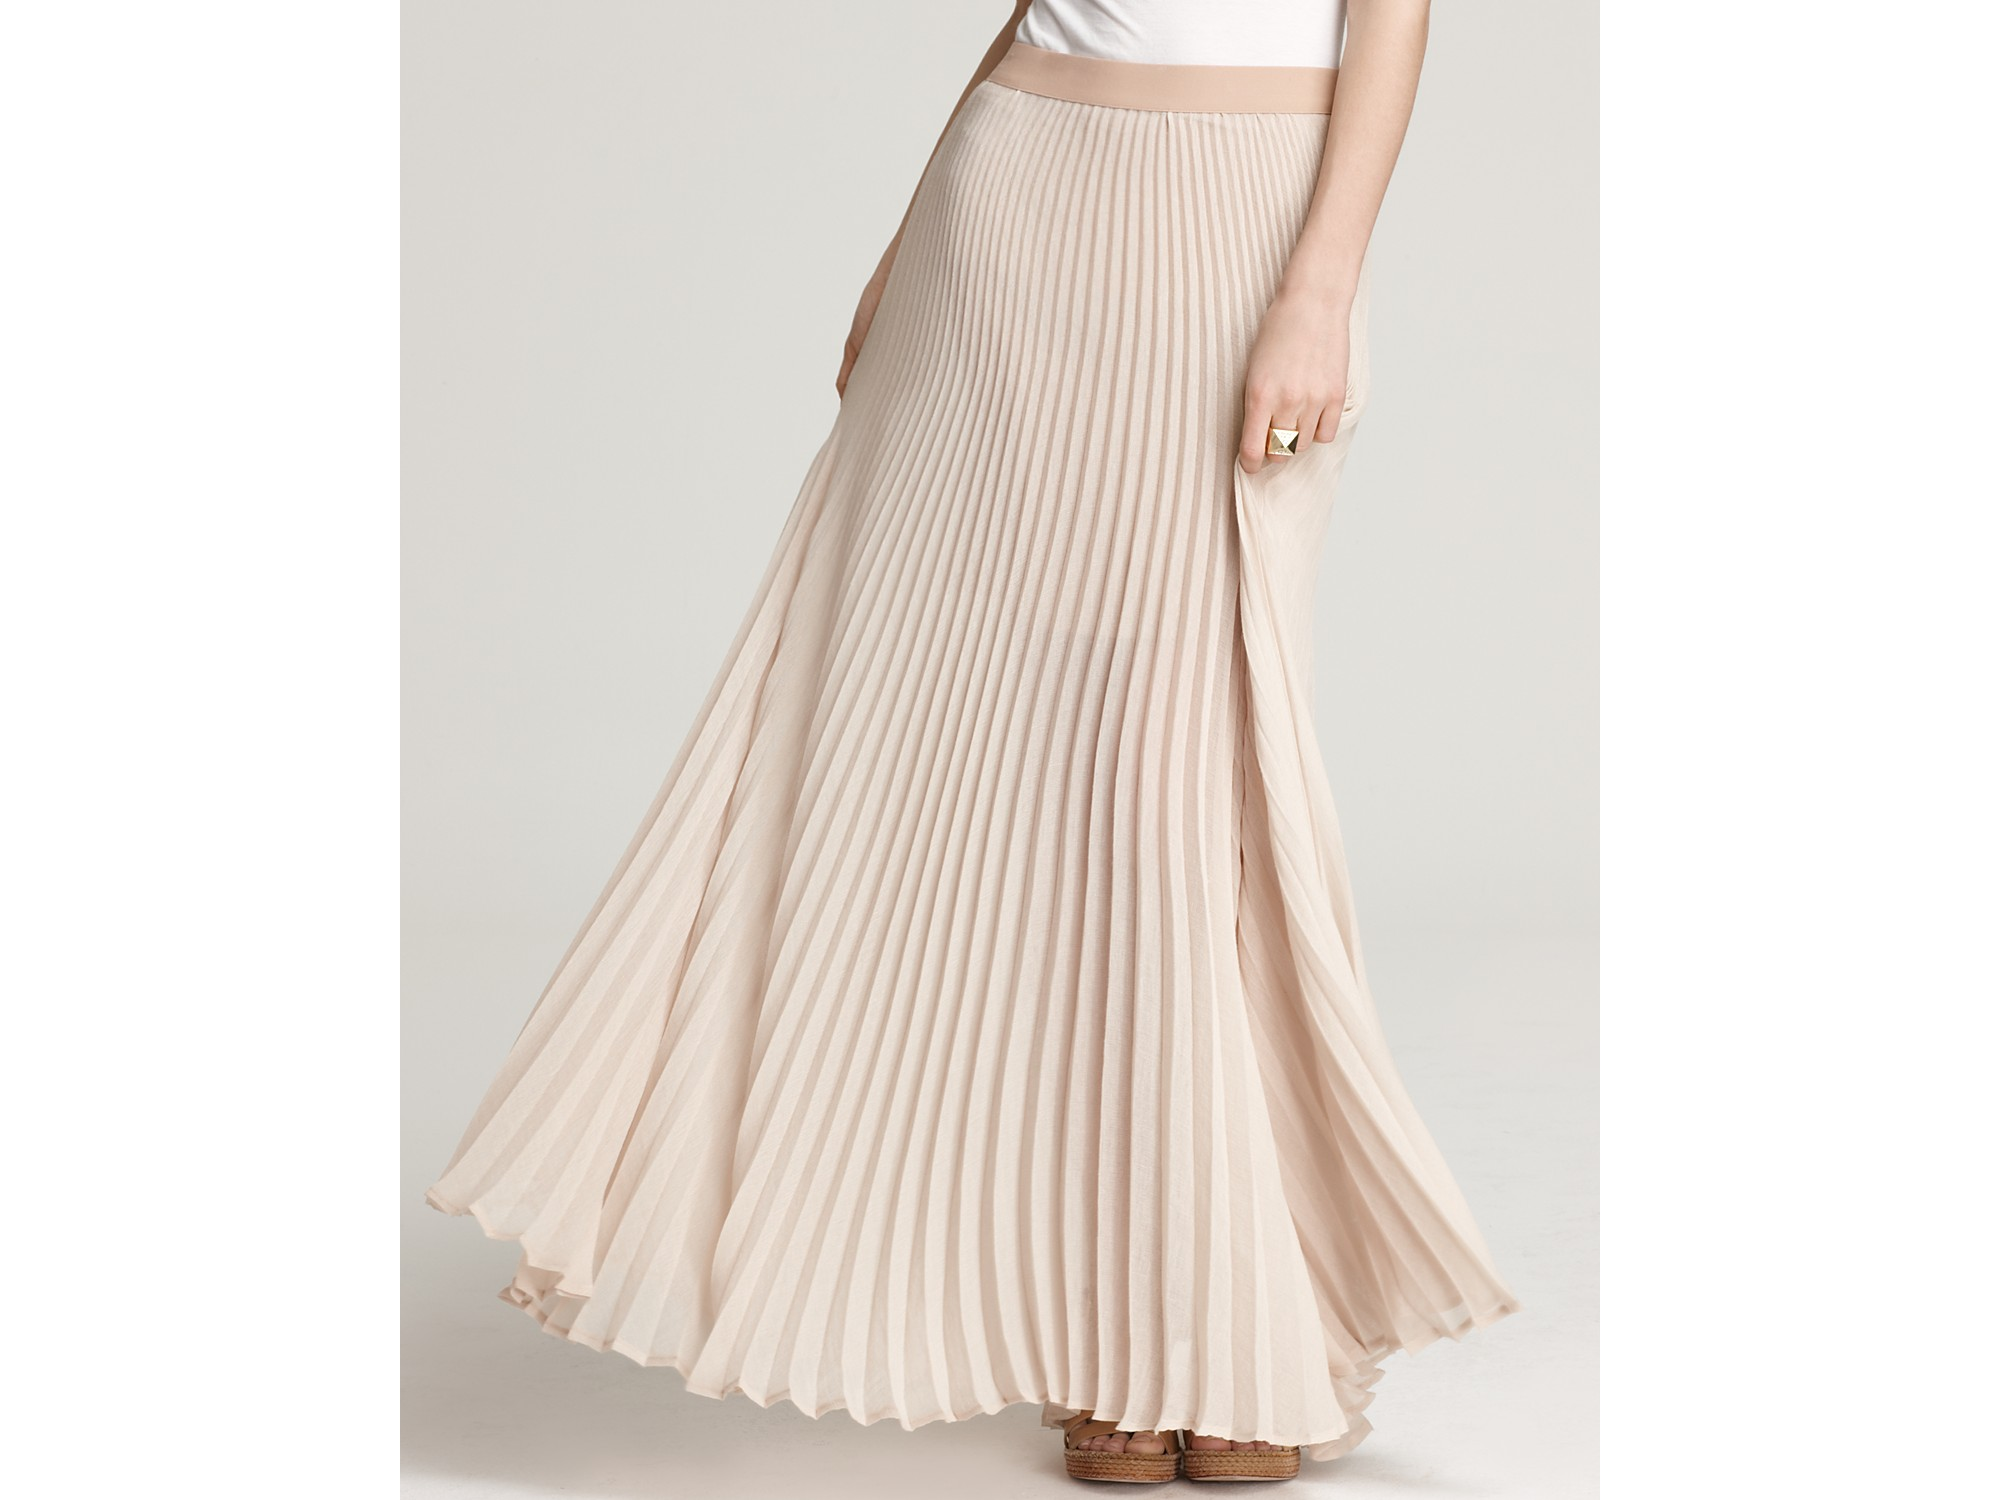 Bcbgmaxazria Skirt Estel Sunburst Pleated Maxi in Natural | Lyst